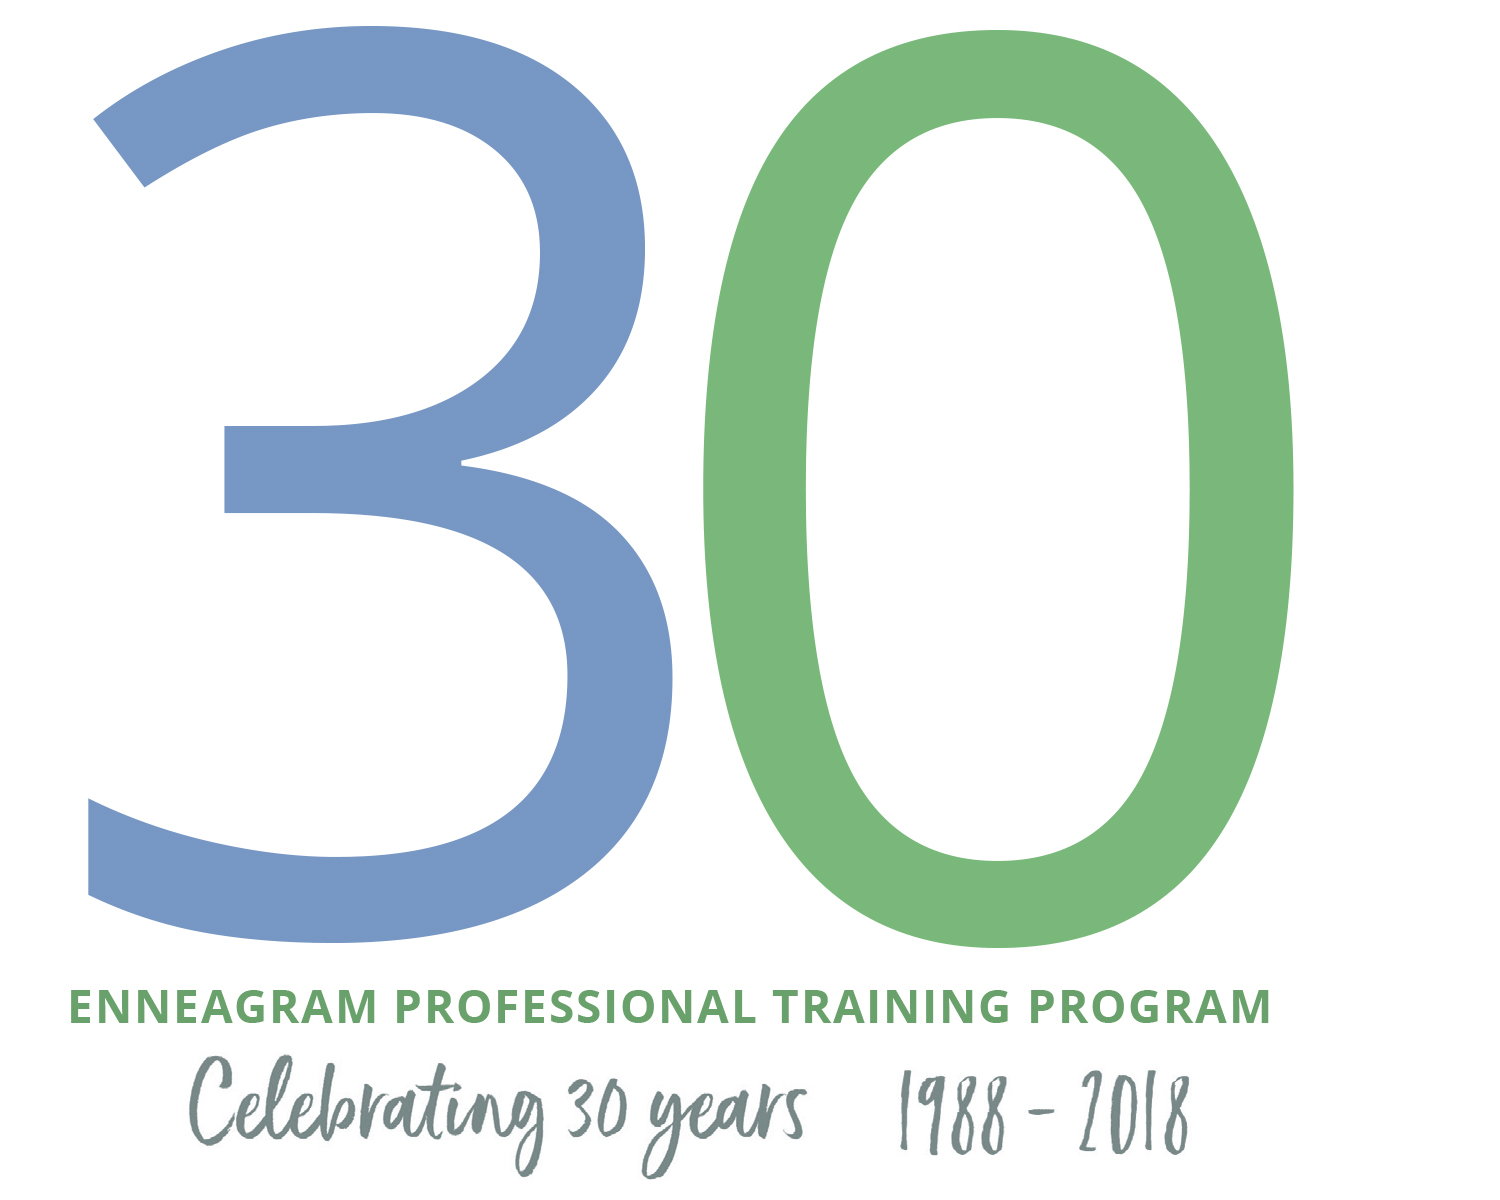 Enneagram professional training program the narrative enneagram this year we celebrate the 30th anniversary of the enneagram professional training program eptp created by helen palmer and david daniels md maxwellsz